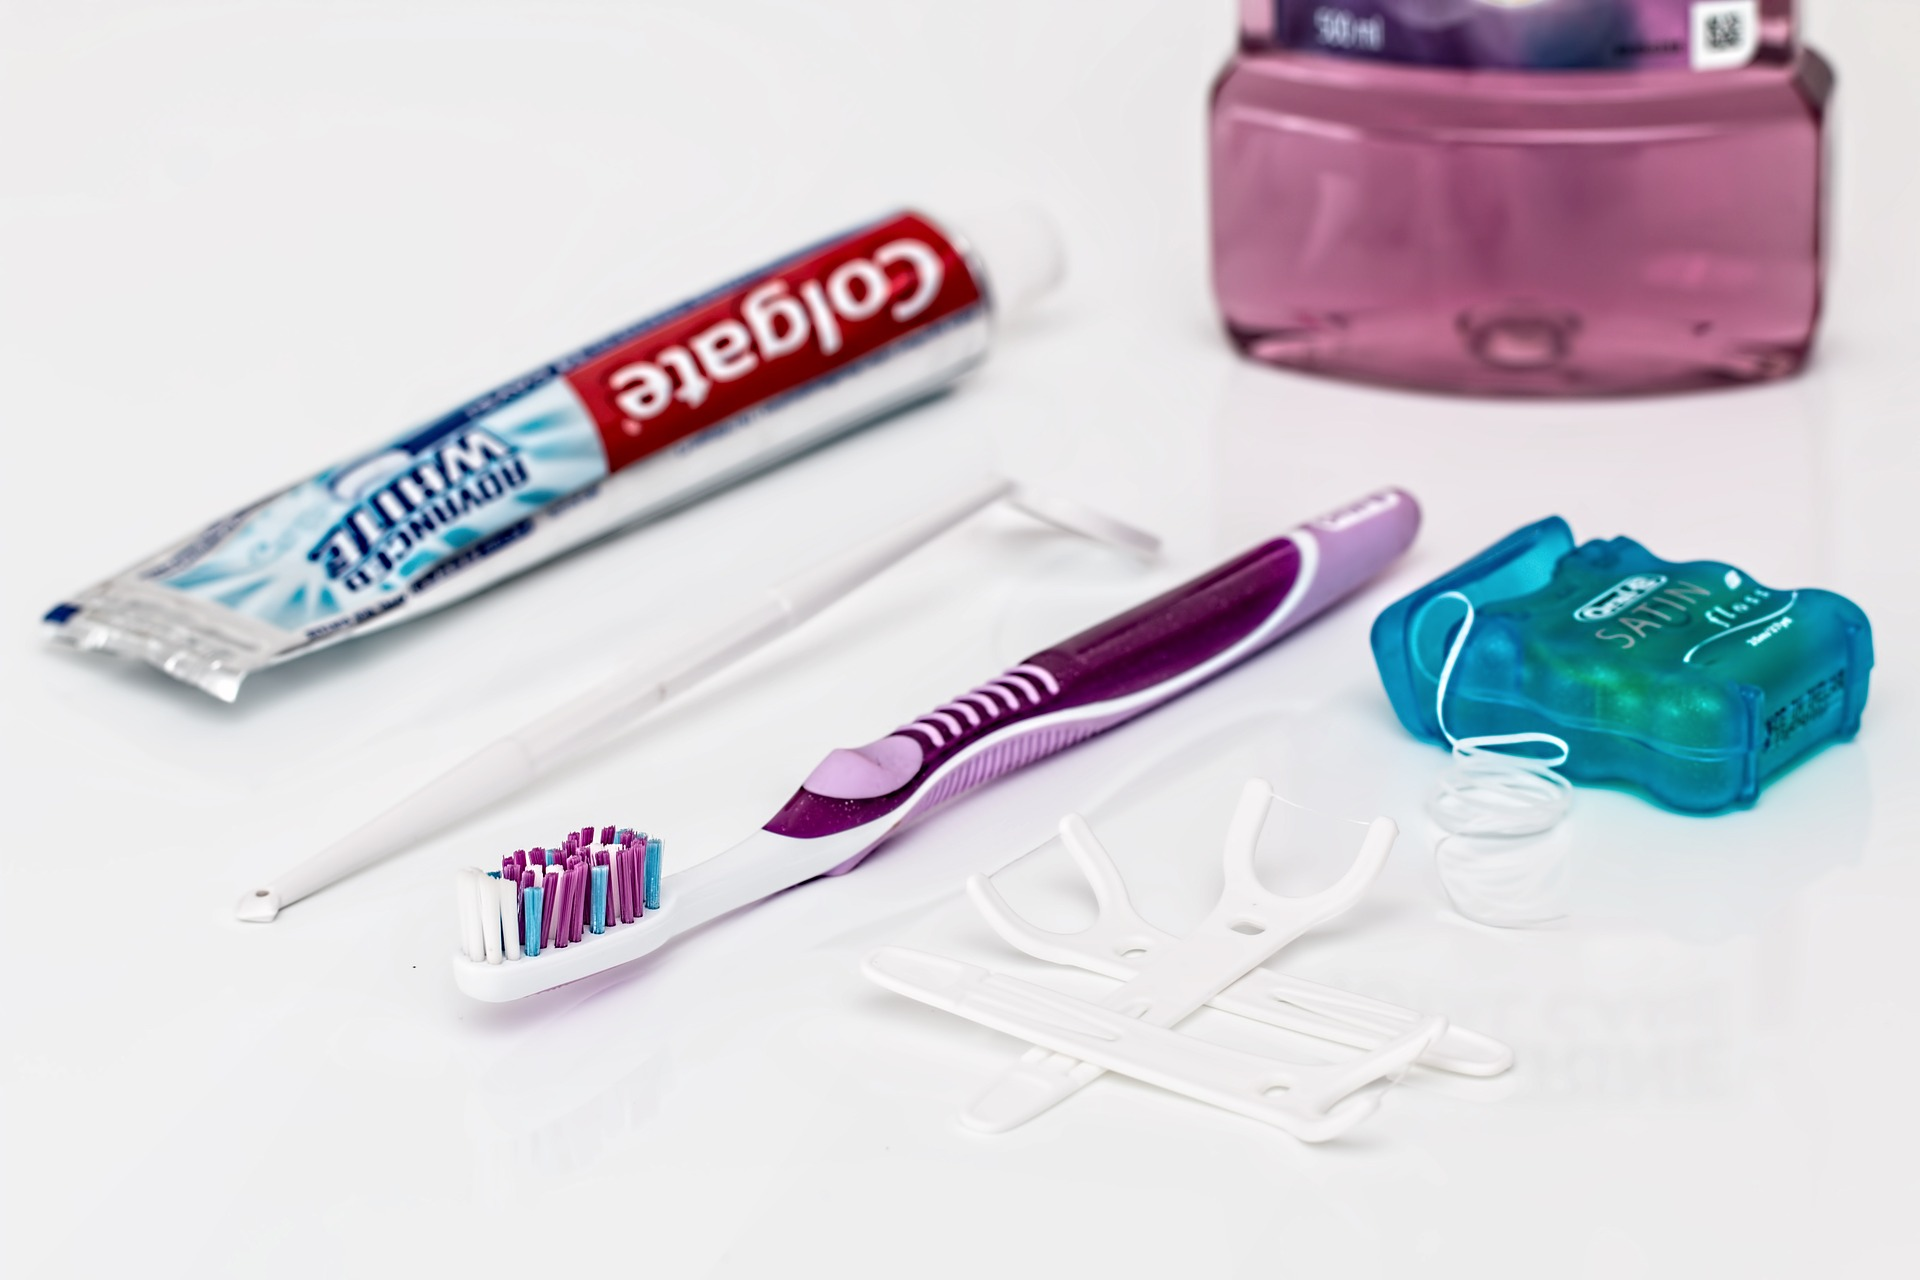 Teeth Cleaning and Care Routines: How to Look After Your Teeth between dental visits